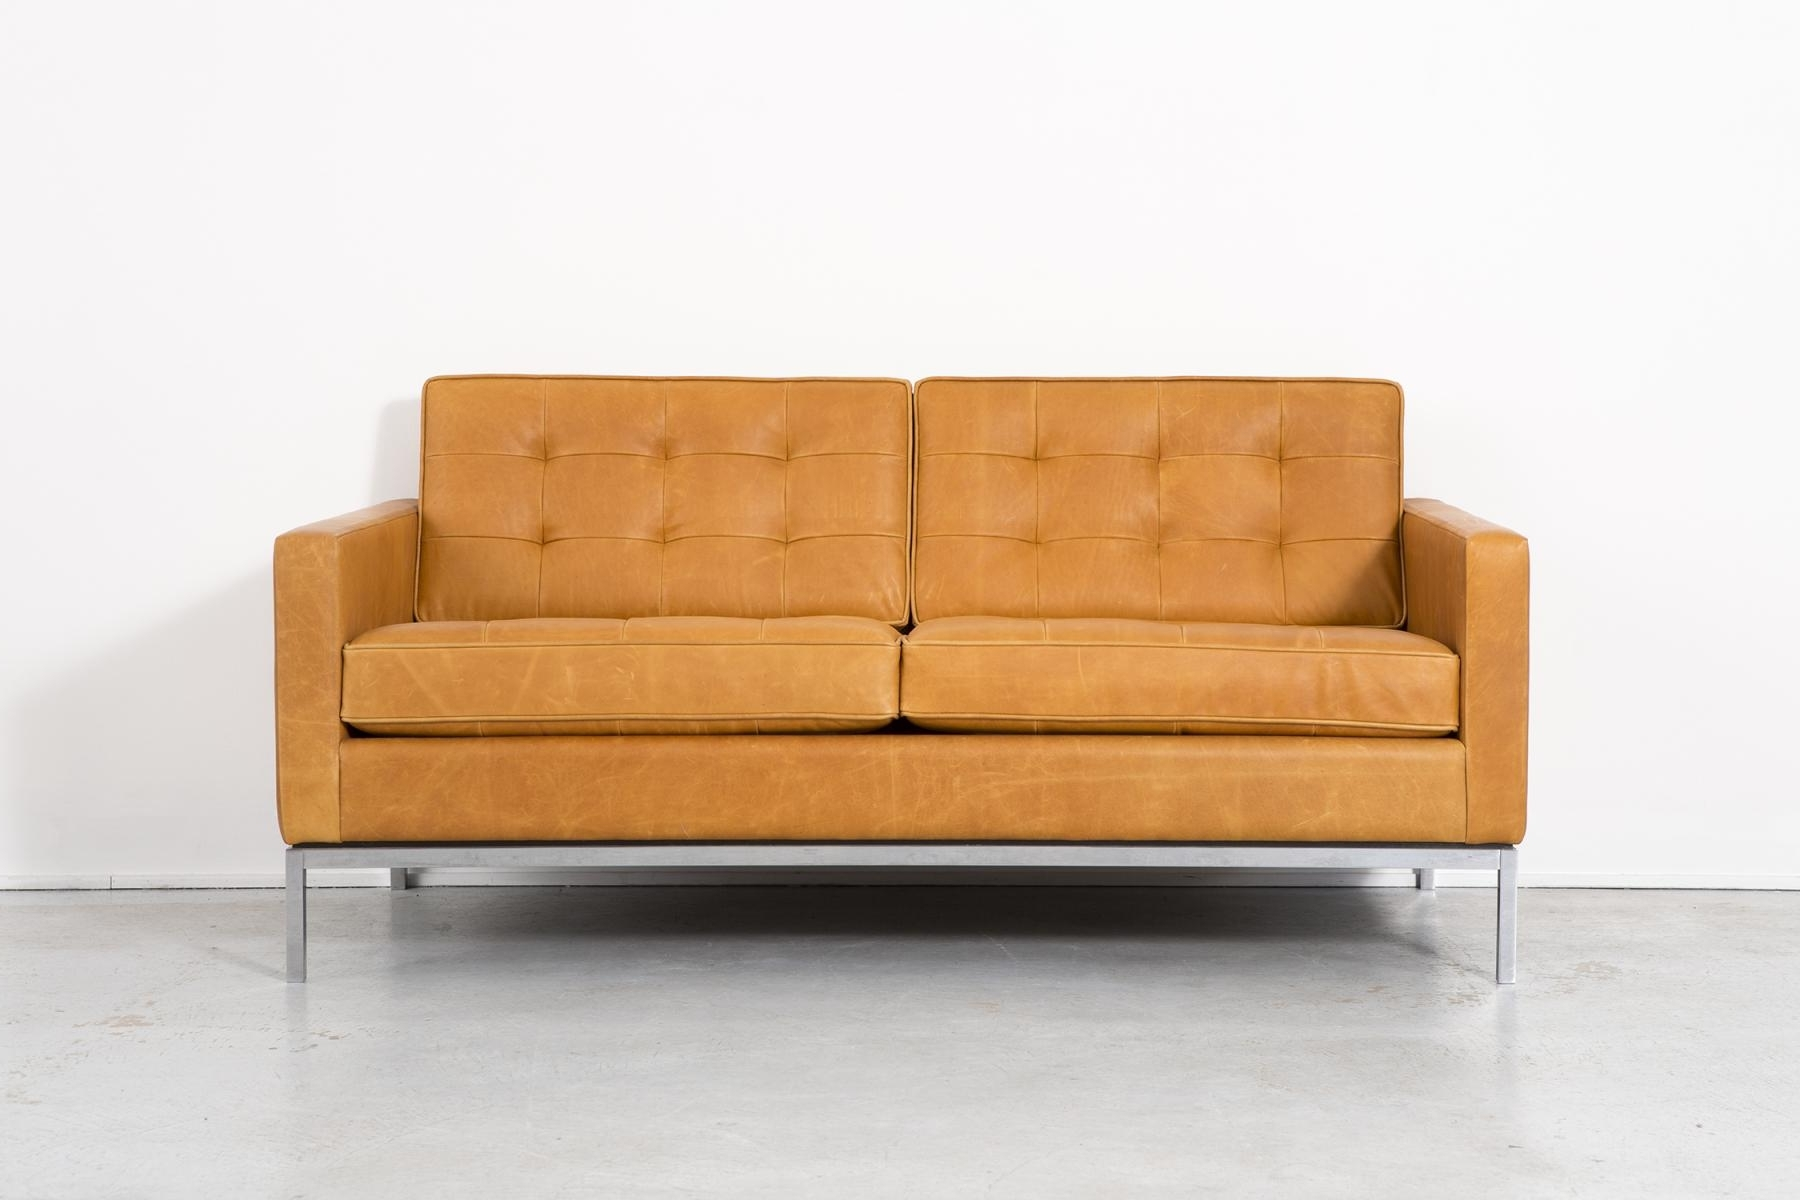 Most Popular Leather Sofaflorence Knoll Bassett For Knoll, 1970S For Sale Regarding Florence Leather Sofas (View 7 of 20)